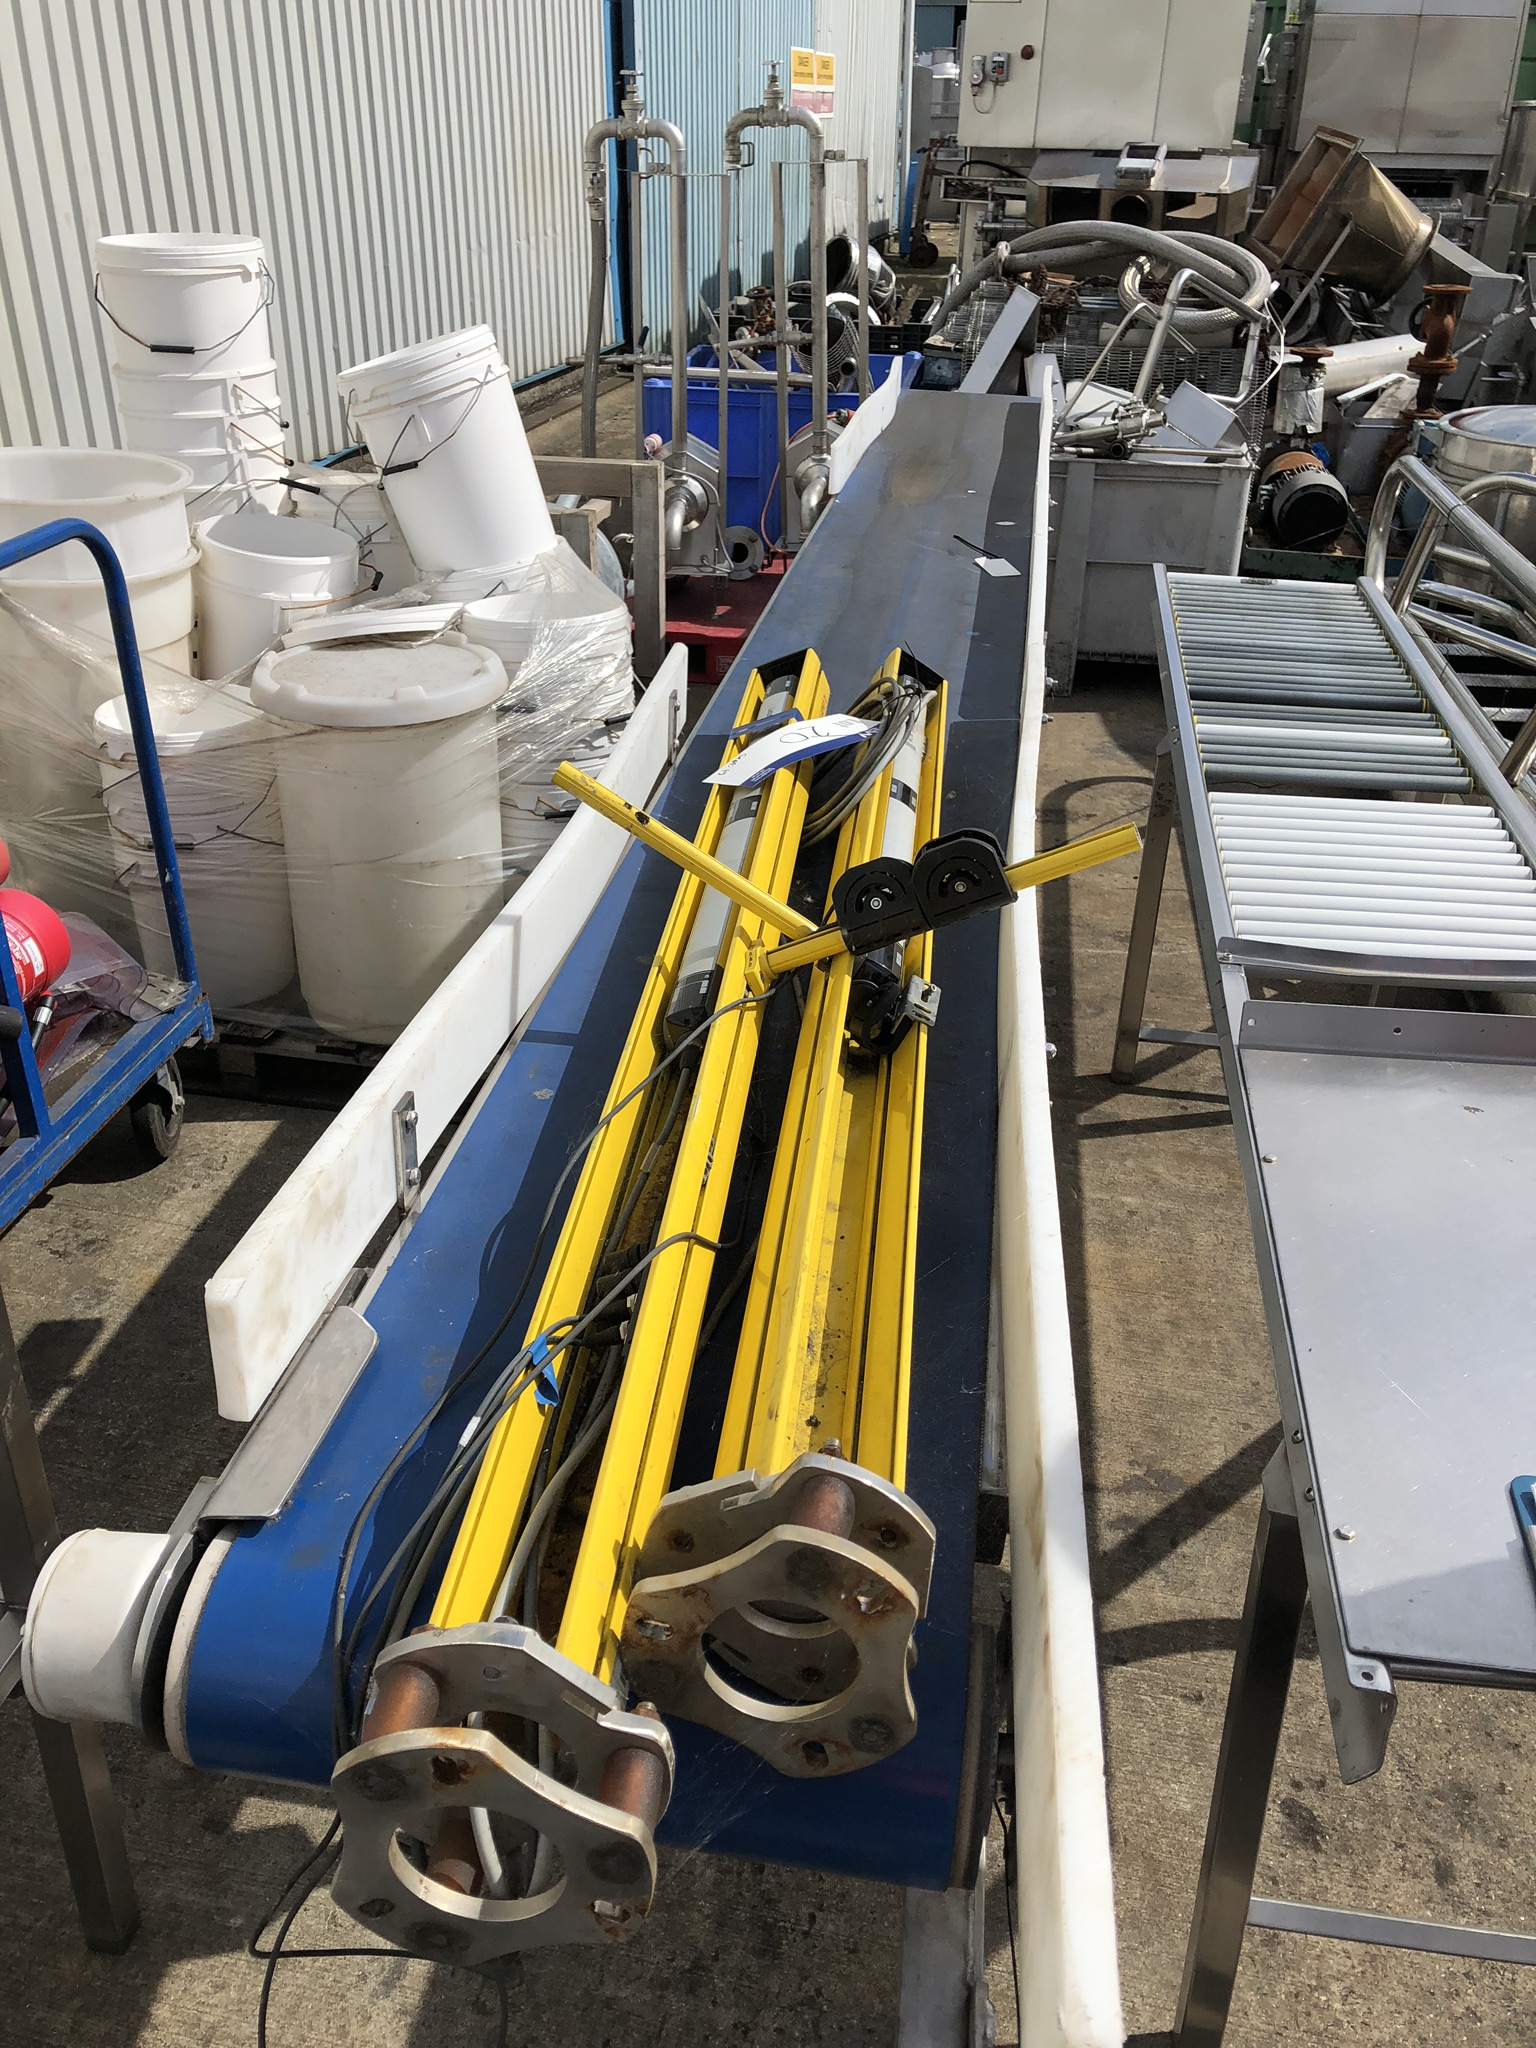 Conveyor, approx. 450mm belt x 5m long x 1m high, lift out charge - £50 (ref no. 14624) - Image 3 of 3